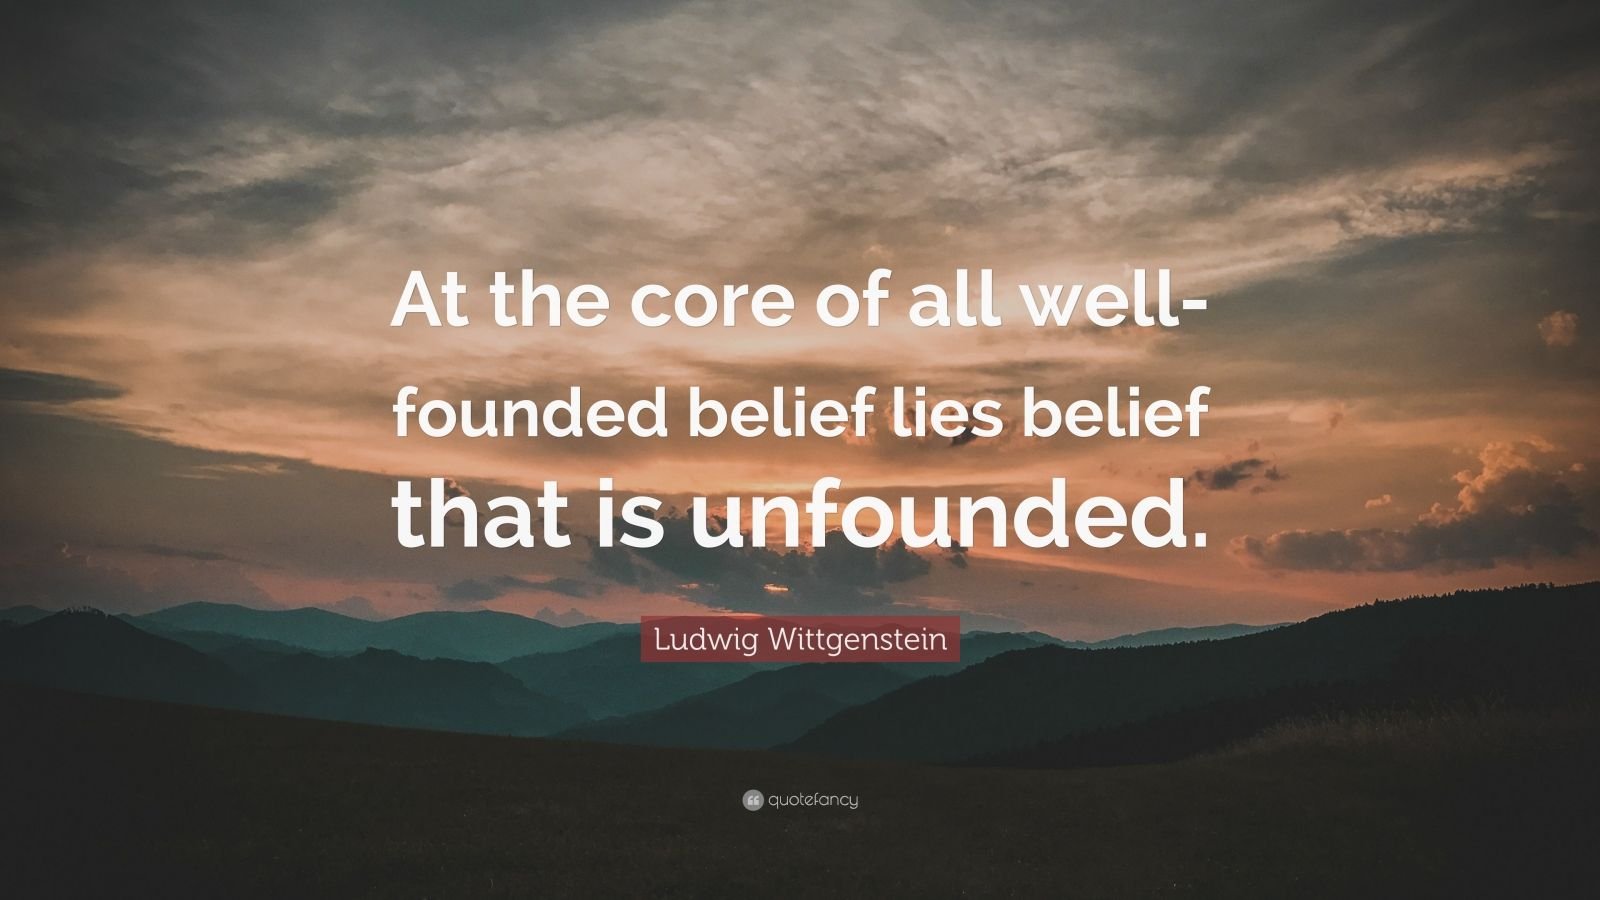 """Ludwig Wittgenstein Quote: """"At the core of all well-founded belief lies belief that is unfounded."""""""